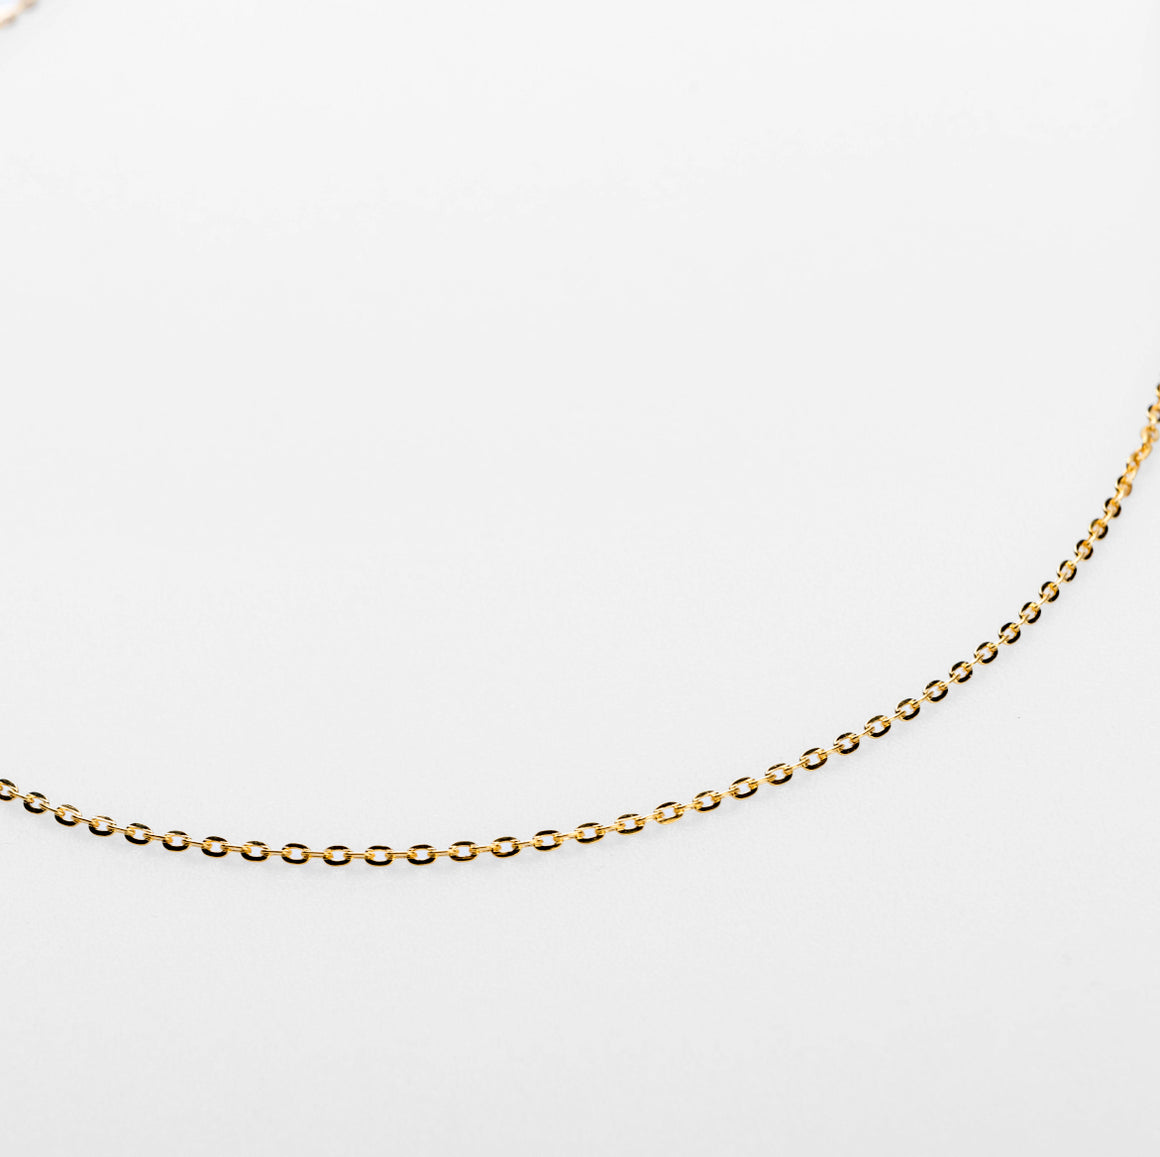 KEENA STAPLE NECKLACE CHAIN | GOLD - 54 Floral Streetwear Urban Clothing